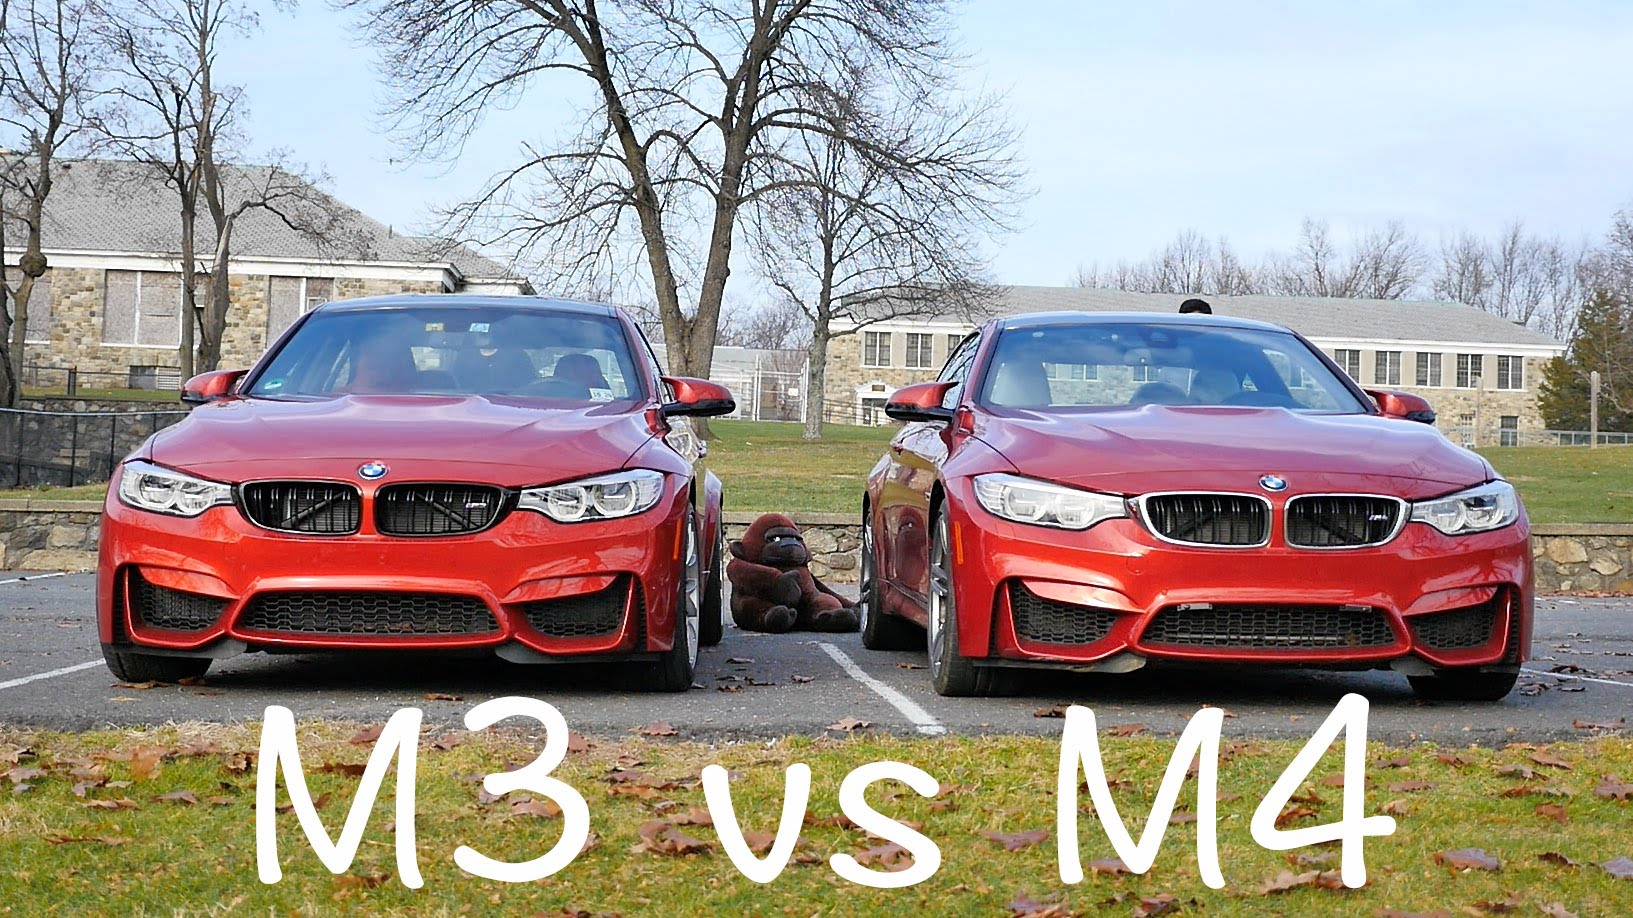 BMW F80 M3 vs. F82 M4 Comparison Suggests 2016 MY Has Better Exhaust Bmw M Vs Tesla Model on bmw 318is vs, bmw 528i vs, bmw mineral white, bmw x6 vs, bmw x1 vs, bmw taurus, bmw x4 vs, bmw d3, e36 m3 vs, bmw z3, bmw m4, bmw m6 vs, bmw 4 series coupe, bmw 3 series vs, bmw vs benz, bmw x5 2005 3.0d top speed, bmw 7 series vs, bmw m5 vs, bmw amg series, bmw x5 vs,